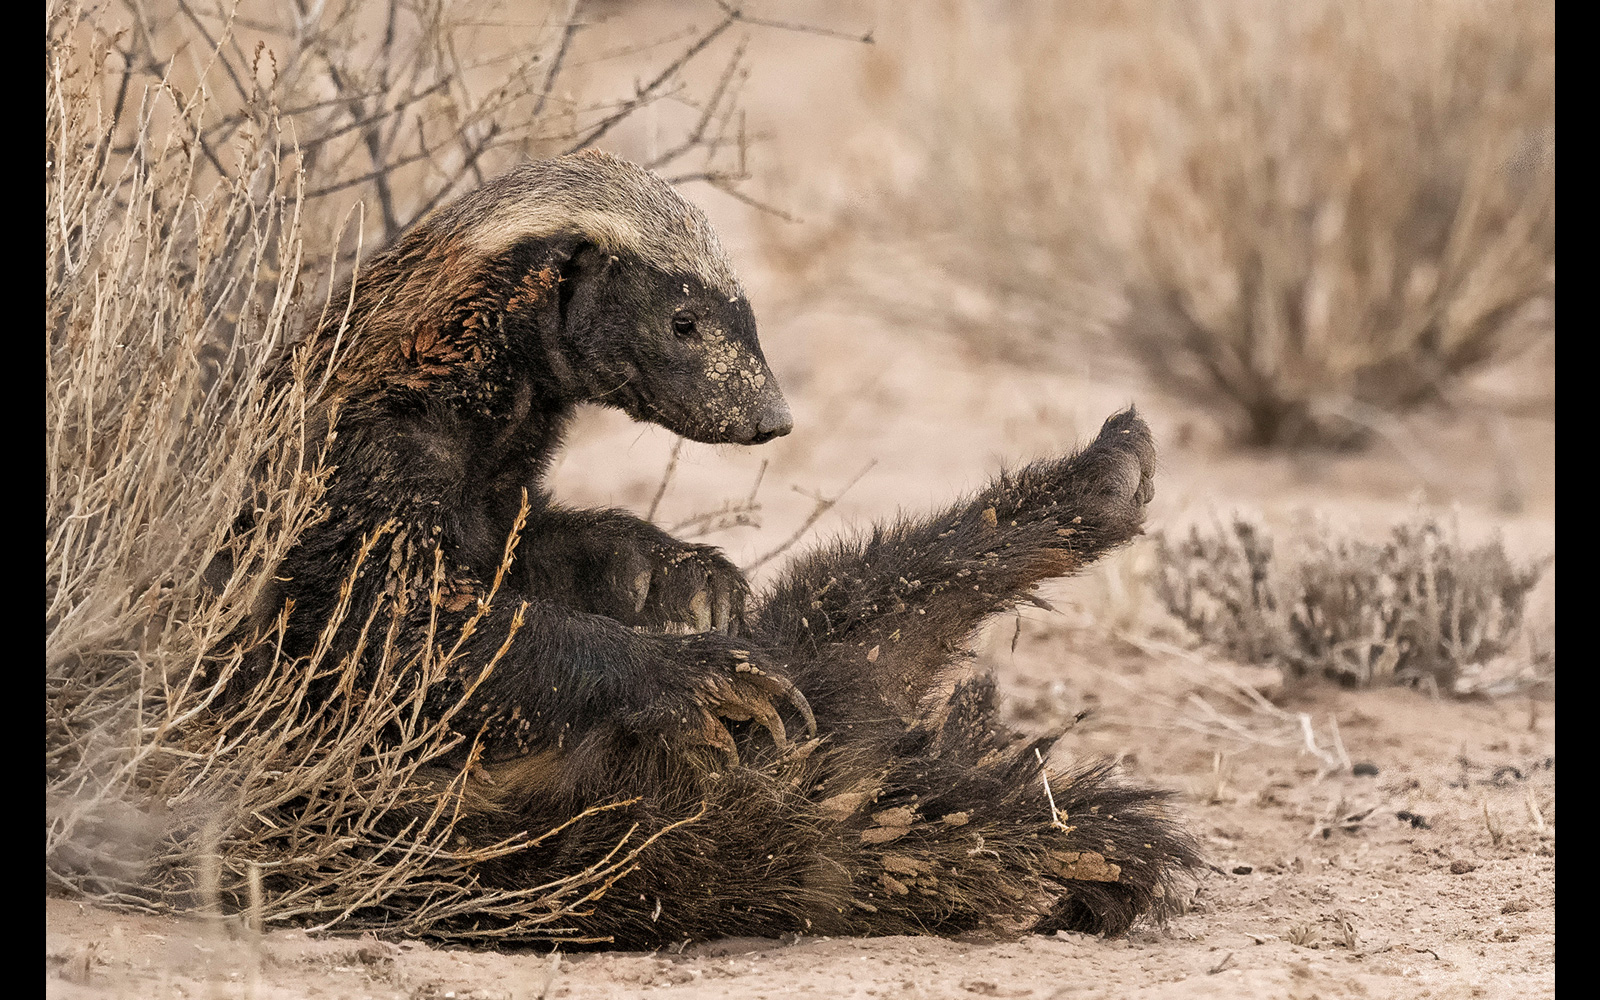 A honey badger cleans up after a mud bath in Kgalagadi Transfrontier Park, South Africa © Johan J. Botha